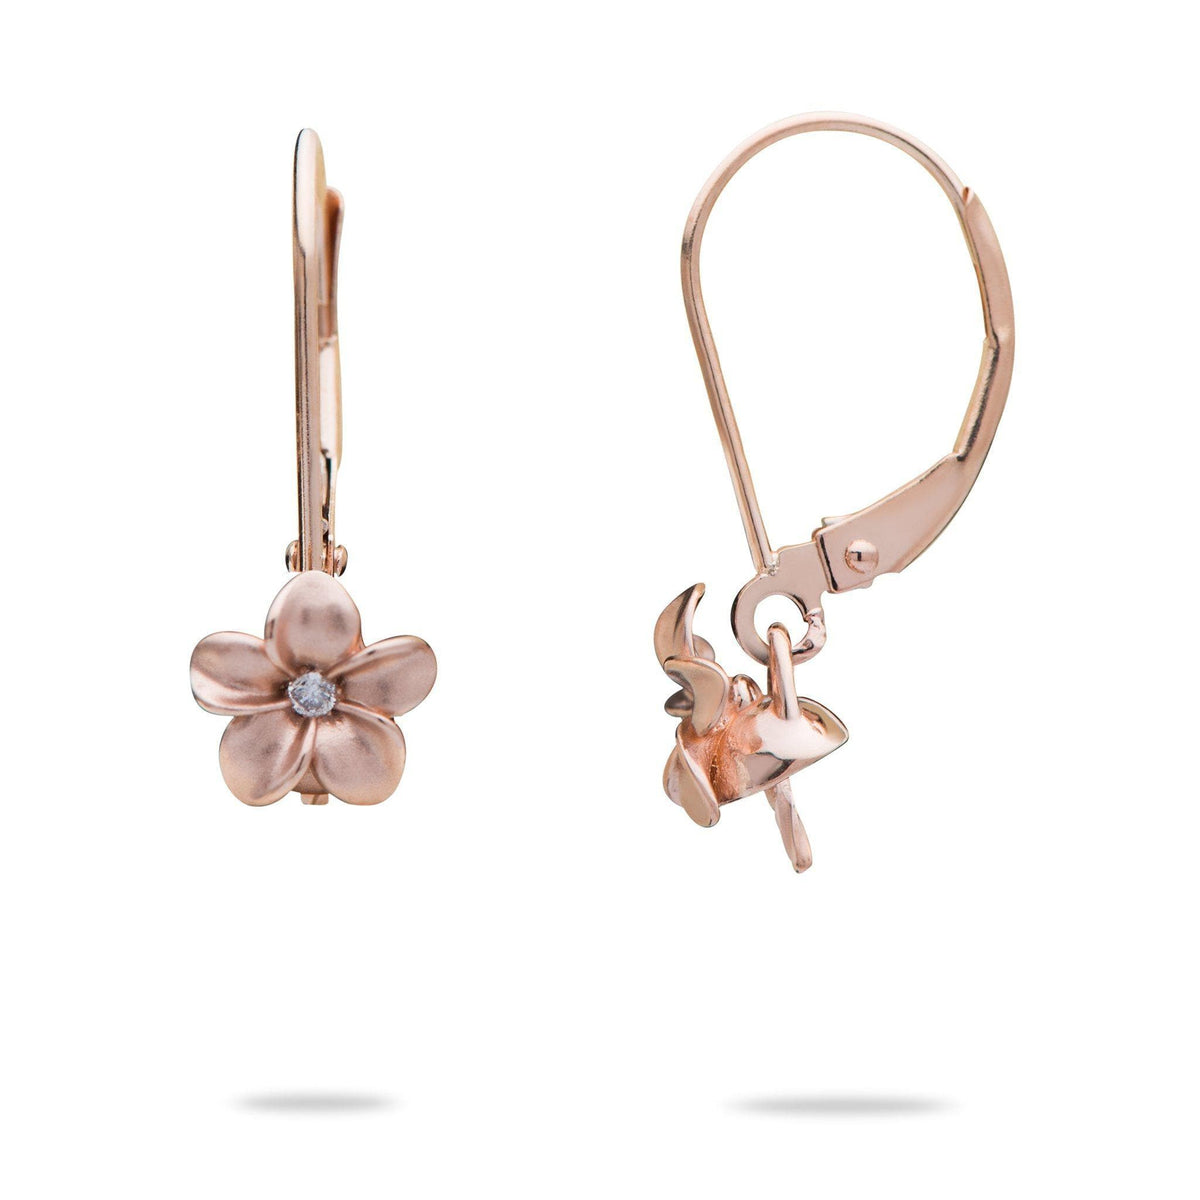 Plumeria Earring Mountings in 14K Rose Gold - Maui Divers Jewelry